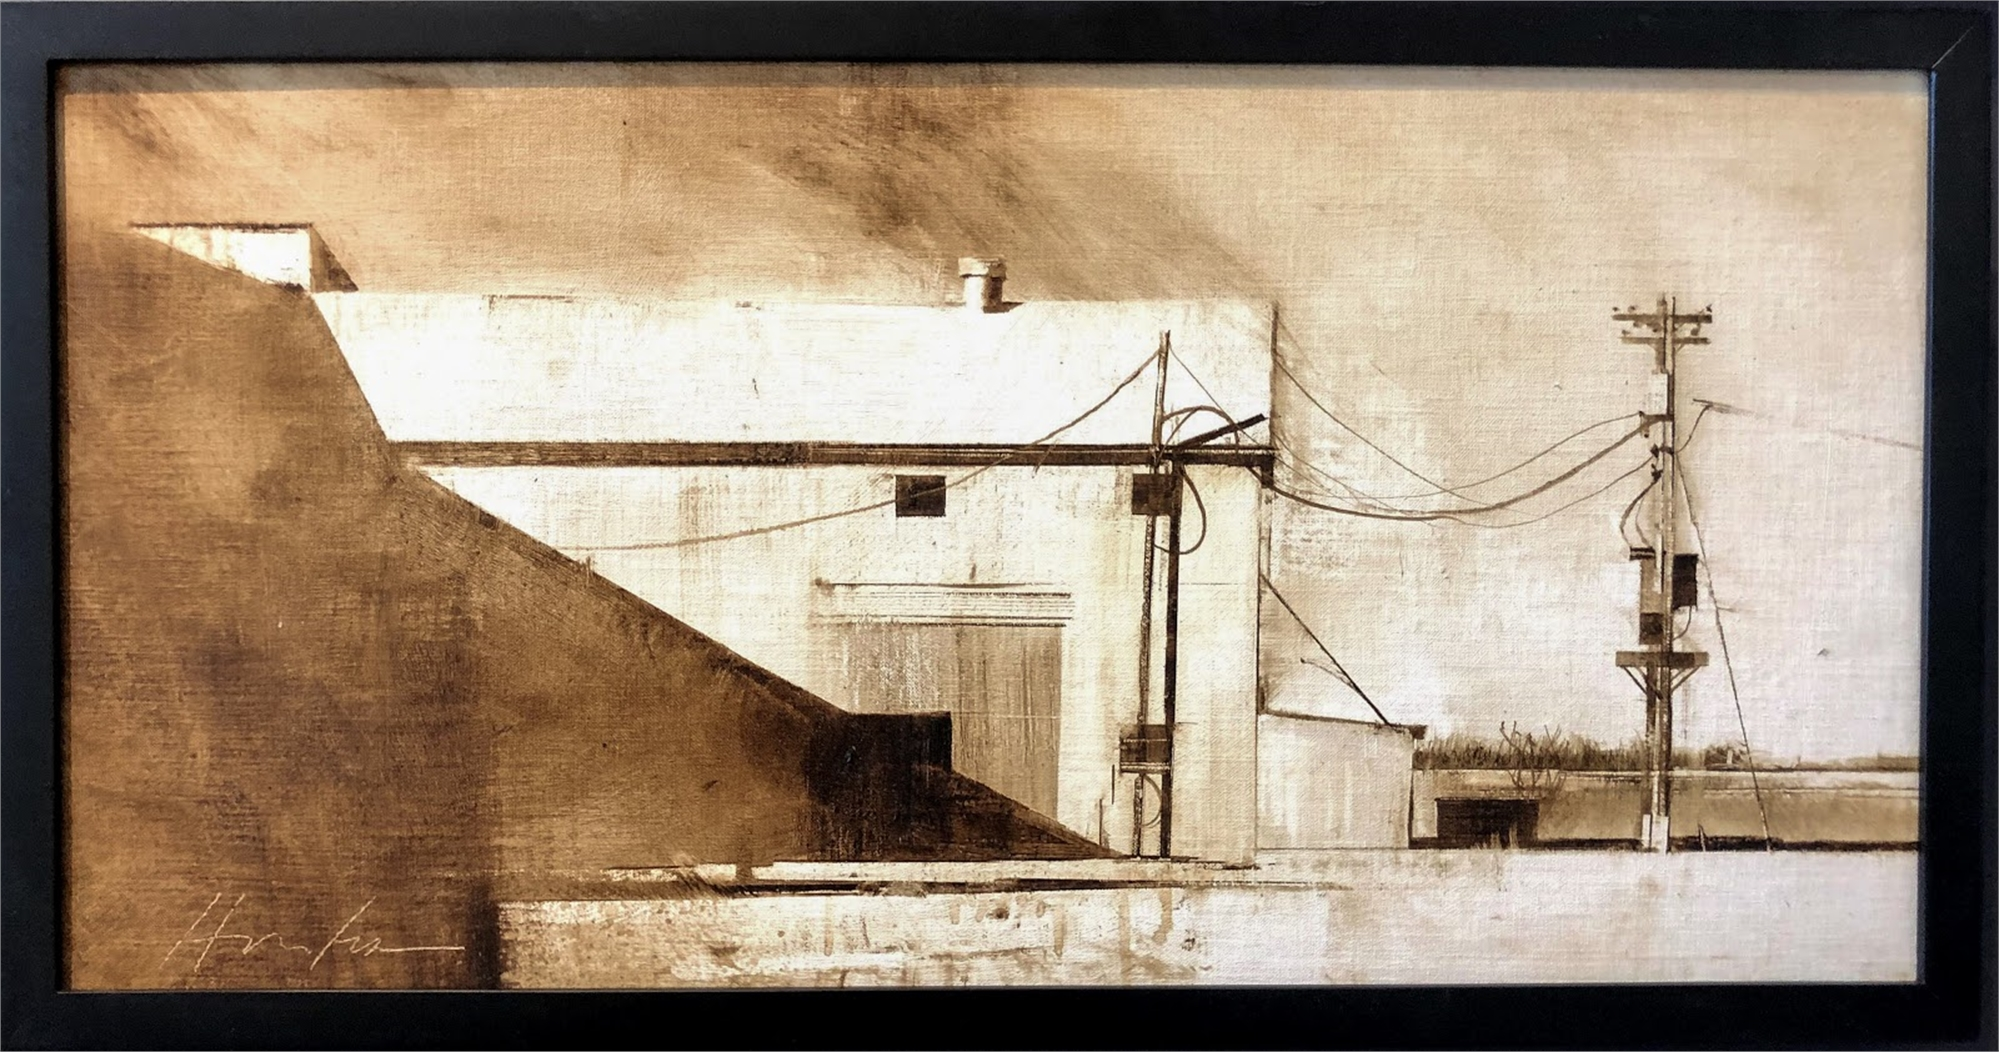 Cotton Gin, Wall Texas by Charlie Hunter